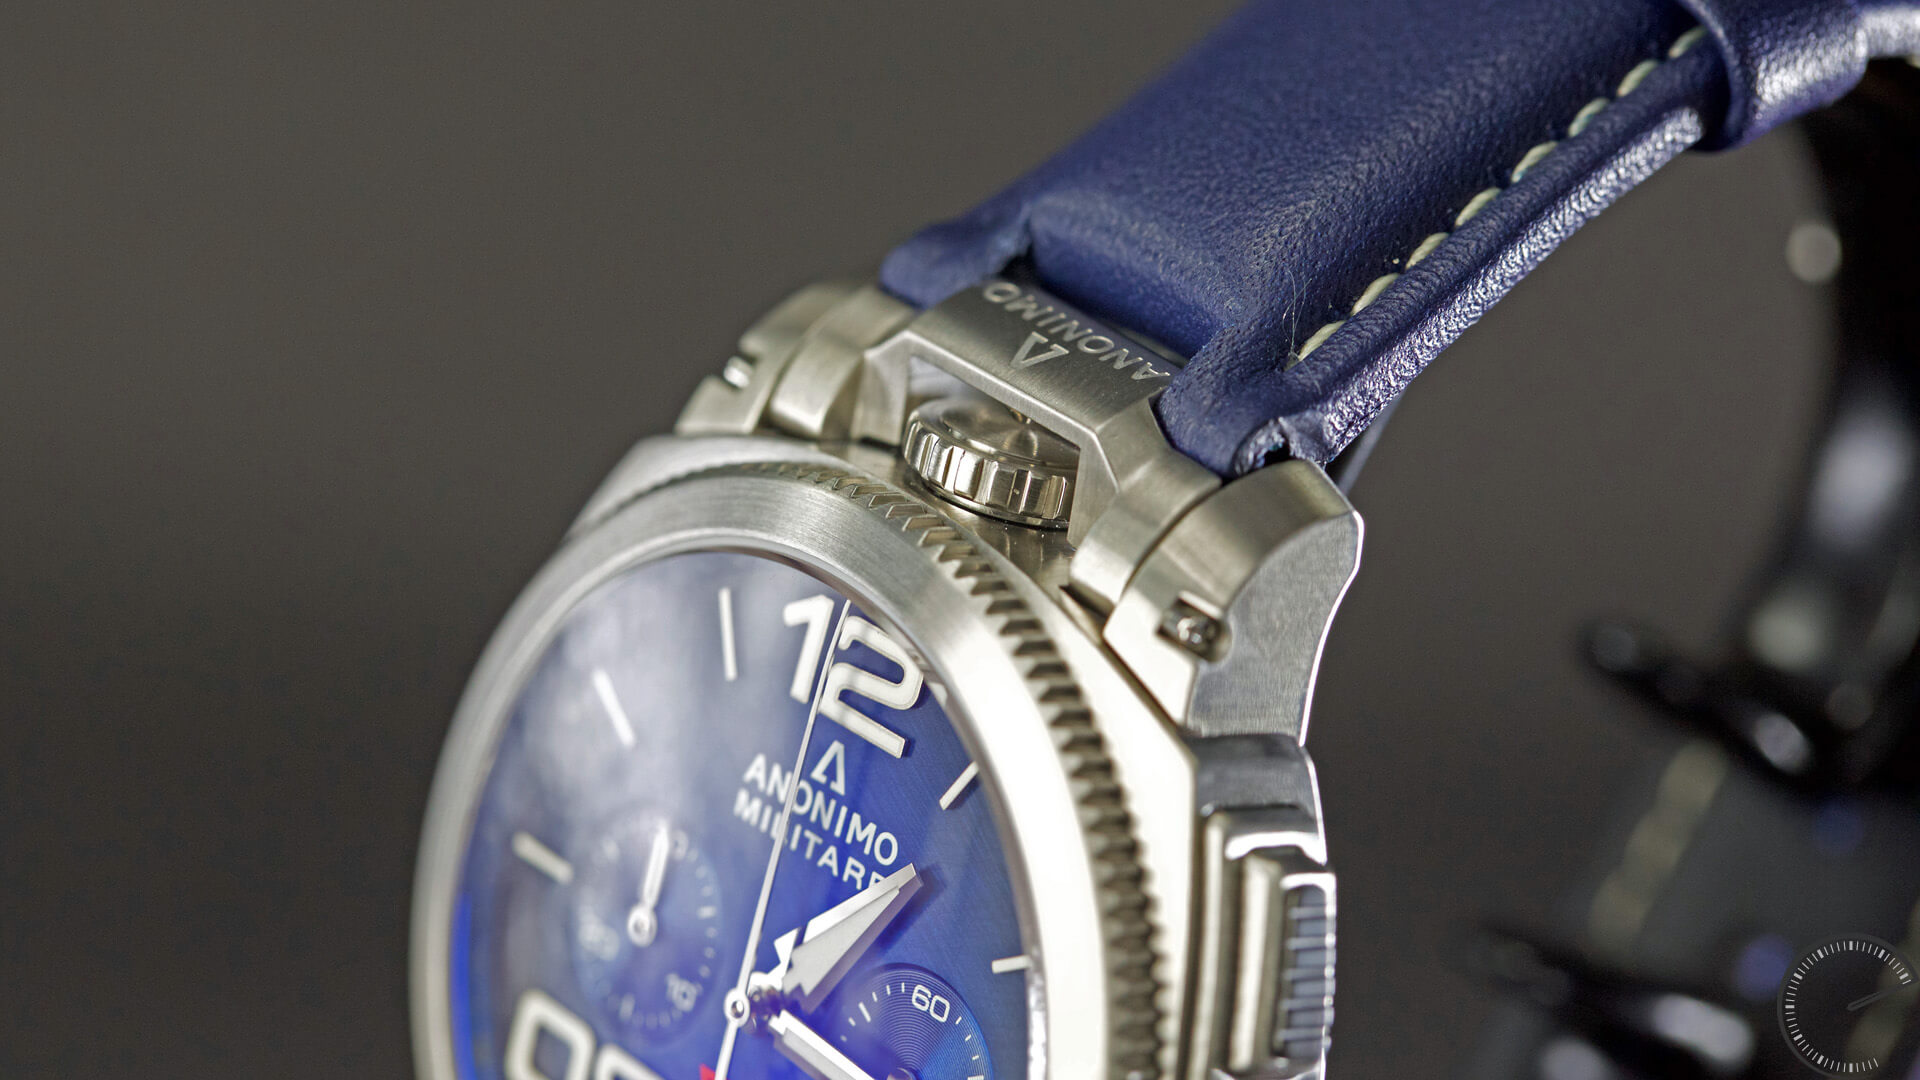 Anonimo_Militaire_Classic_Chrono_blue_dial_crown1 - - ESCAPEMENT magazine - watch reviews by Angus Davies